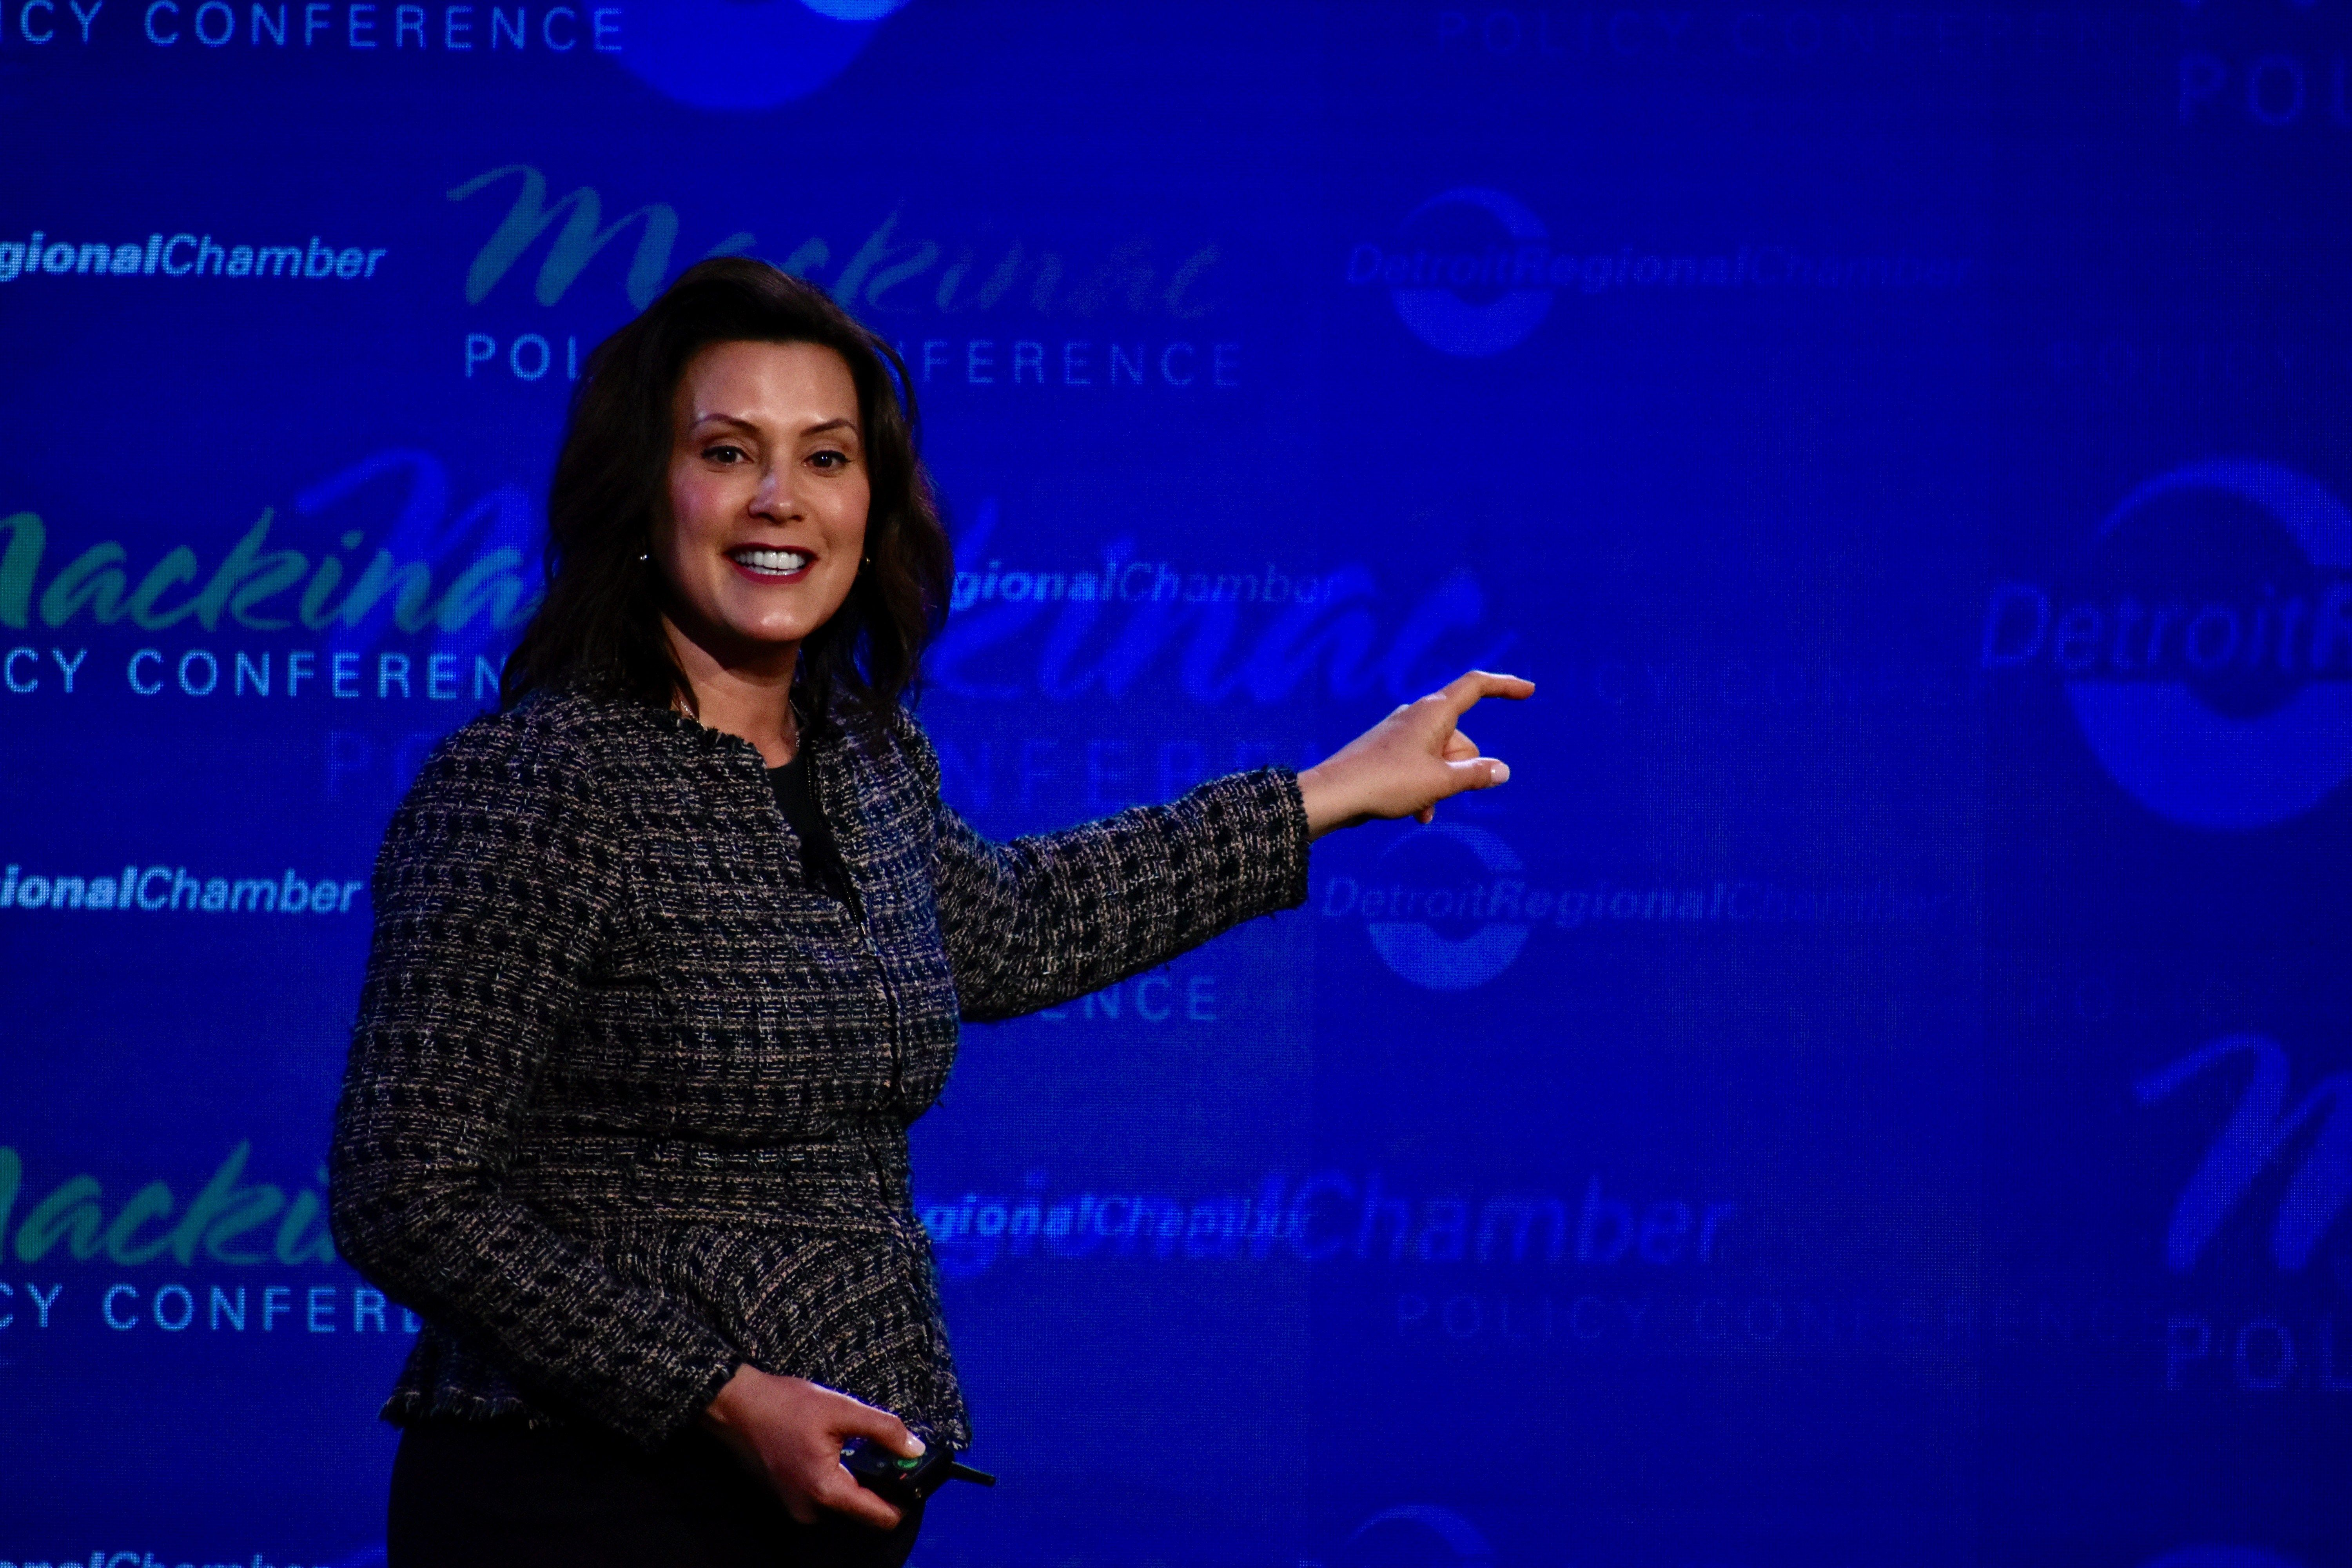 Gov Gretchen Whitmer Speaks At The Mackinac Policy Conference